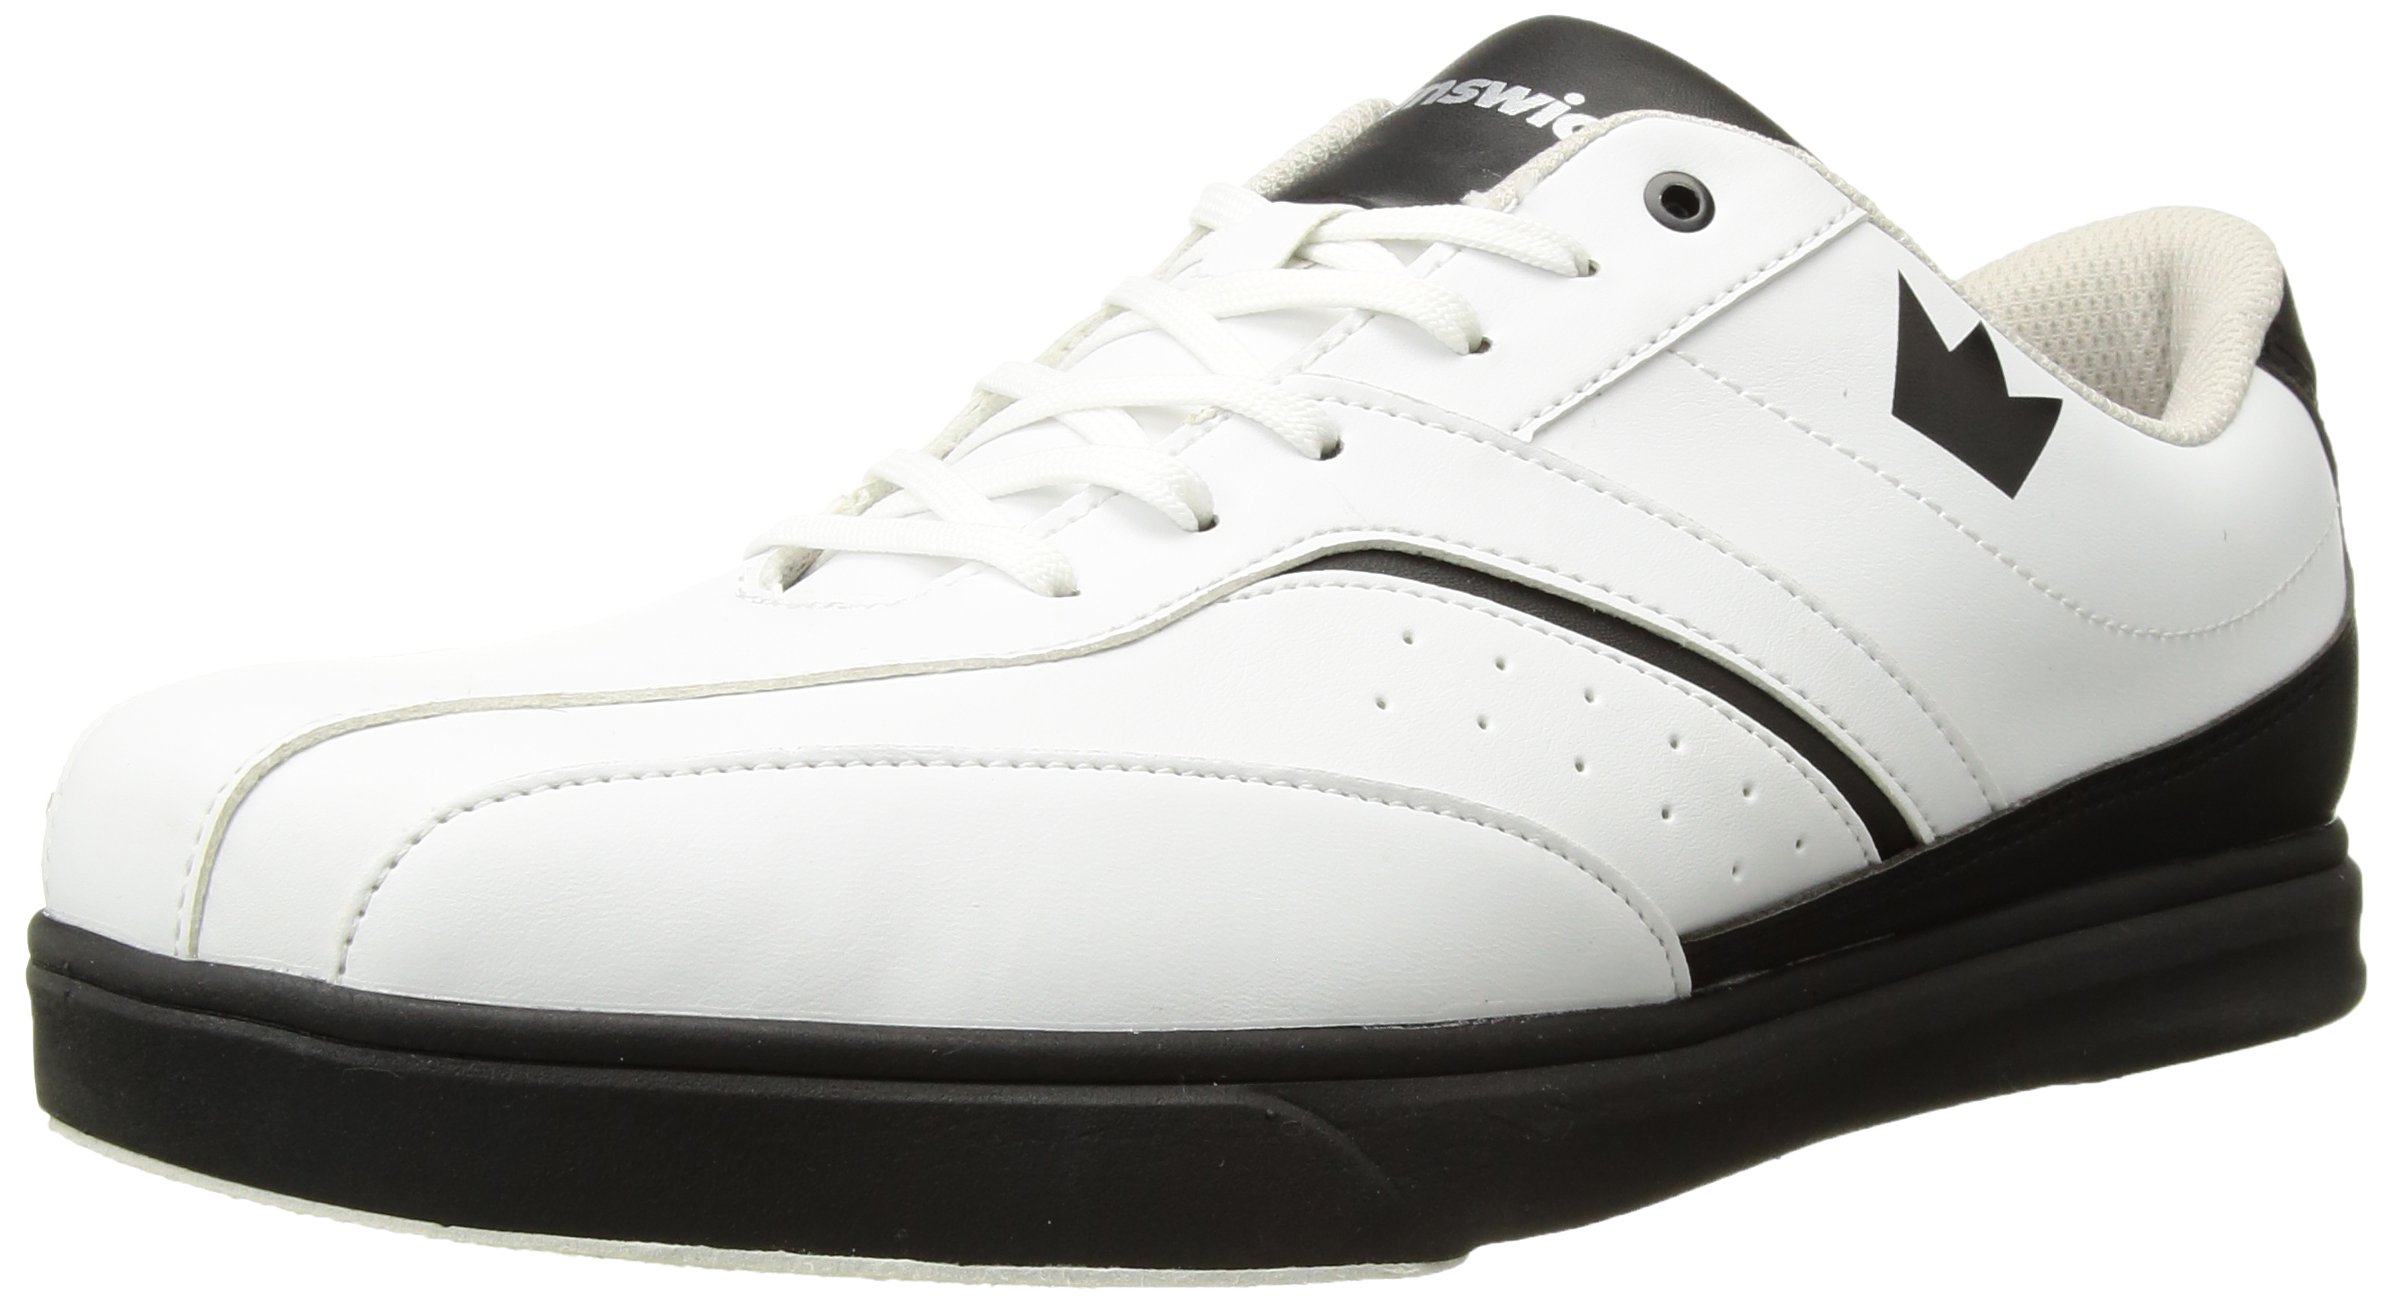 Brunswick Vapor Mens Bowling Shoe White/Black, 9.5 by Brunswick